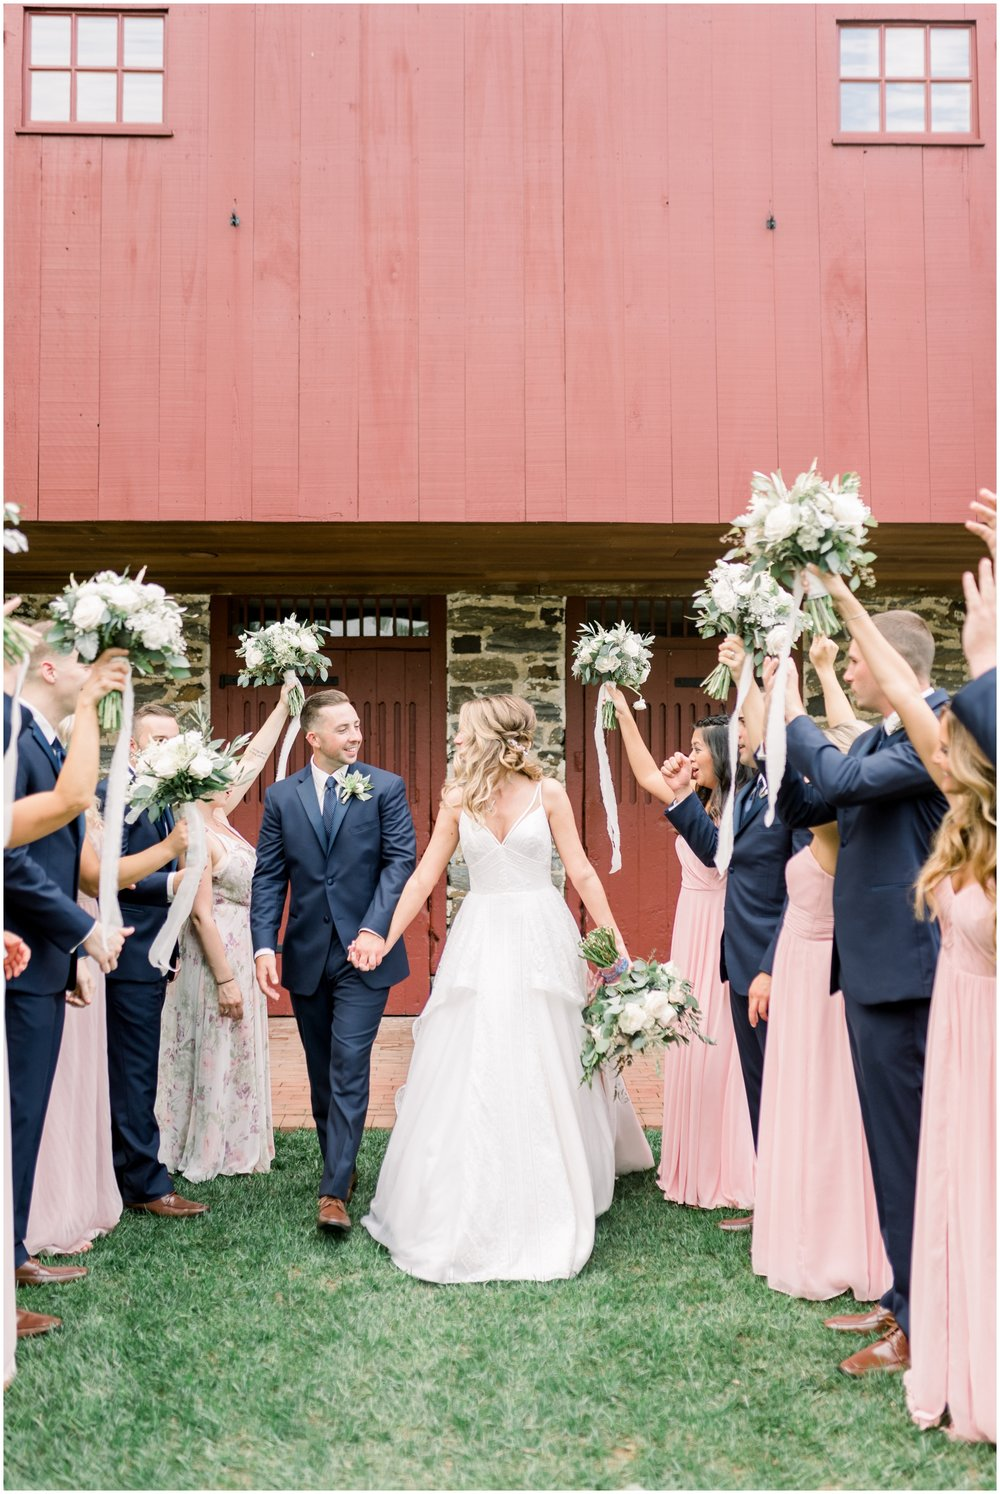 Krista Brackin Photography | July Wedding at The Farm at Eagle's Ridge_0019.jpg